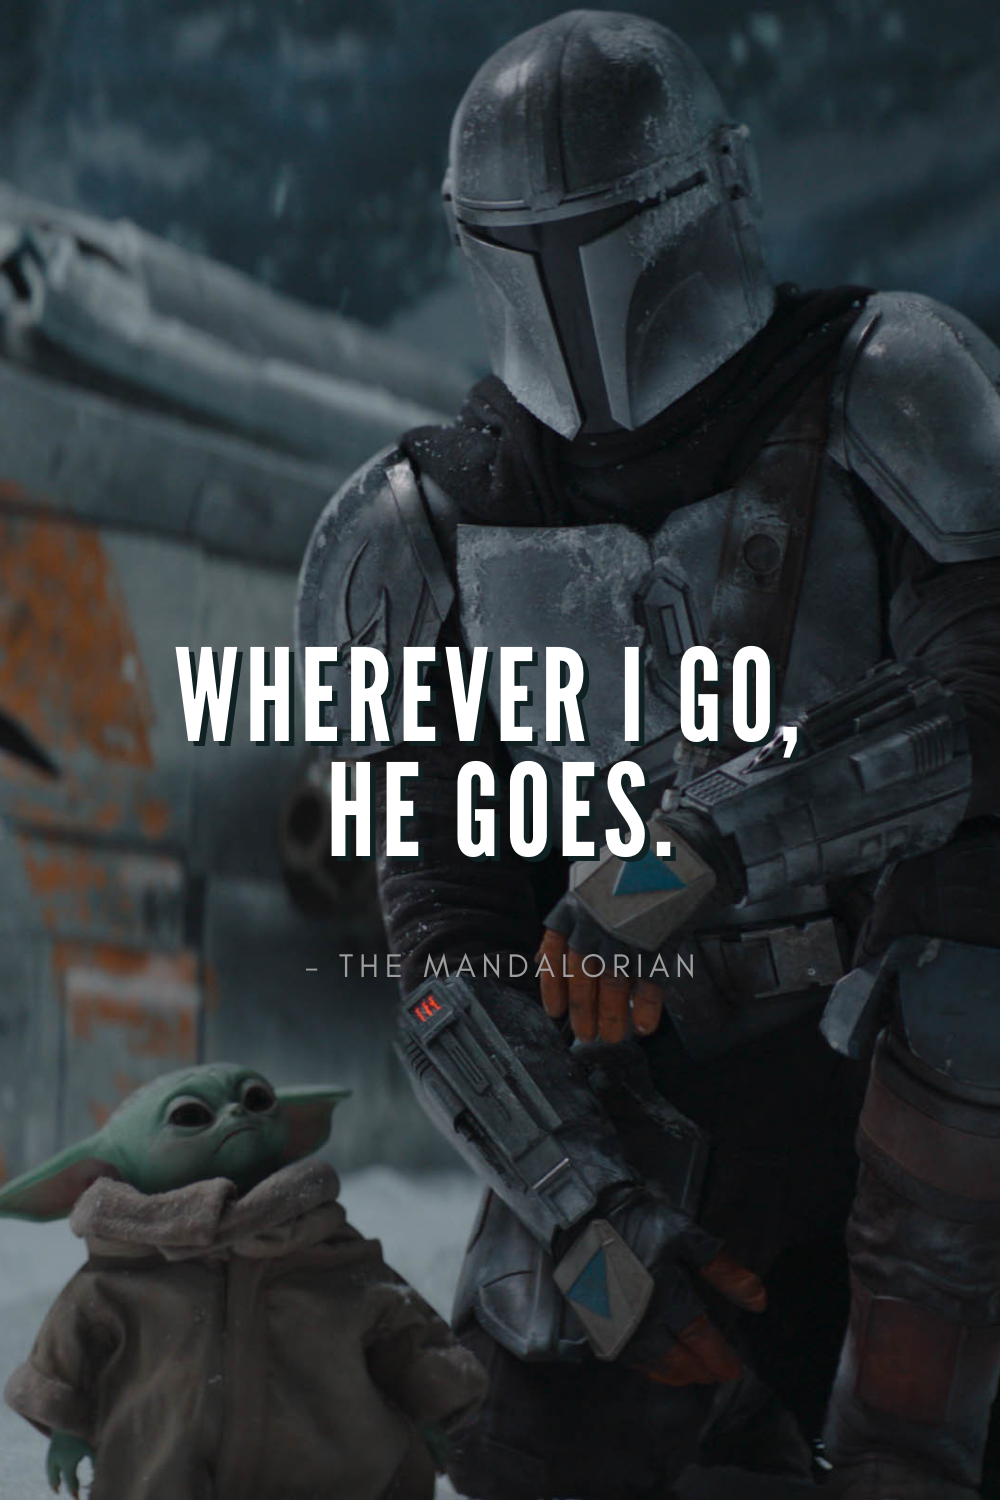 The Best Mandalorian Quotes From Season 2 Popcorner Reviews Actually, he´d got a message from greef karga, who was asking for help with an unknown, certain. the best mandalorian quotes from season